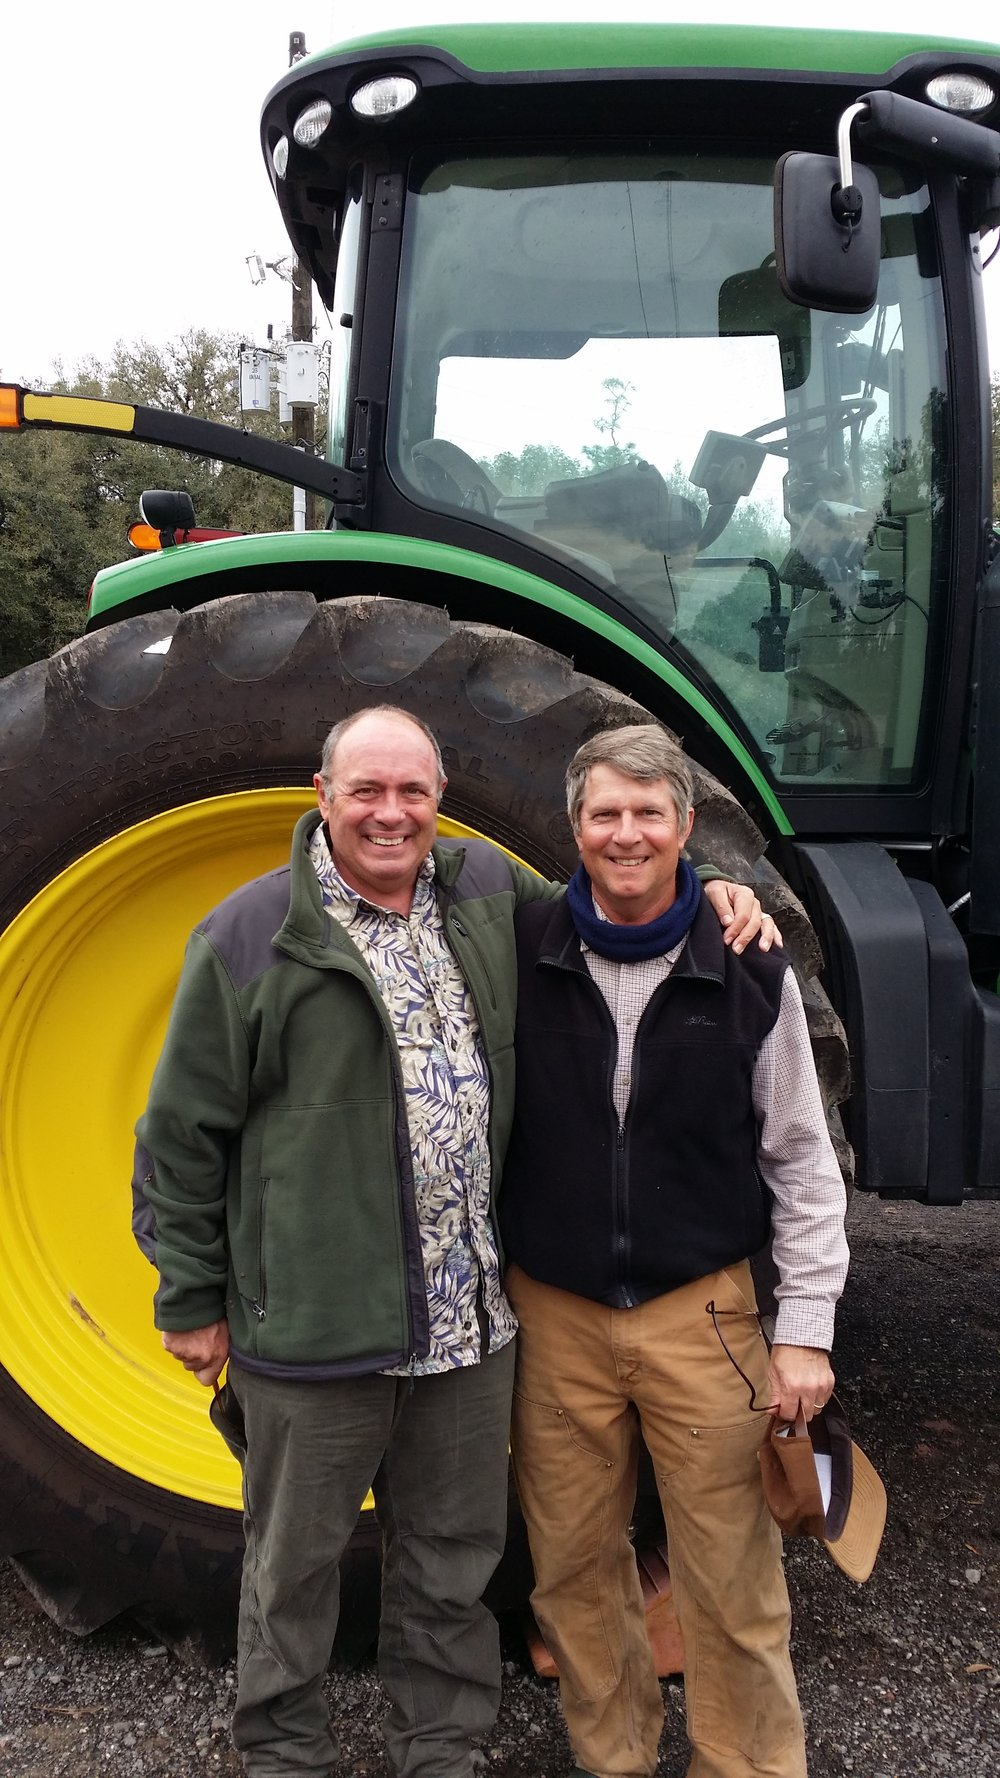 Leonard Park and Birge Sigety in front of a new tractor at the farm.